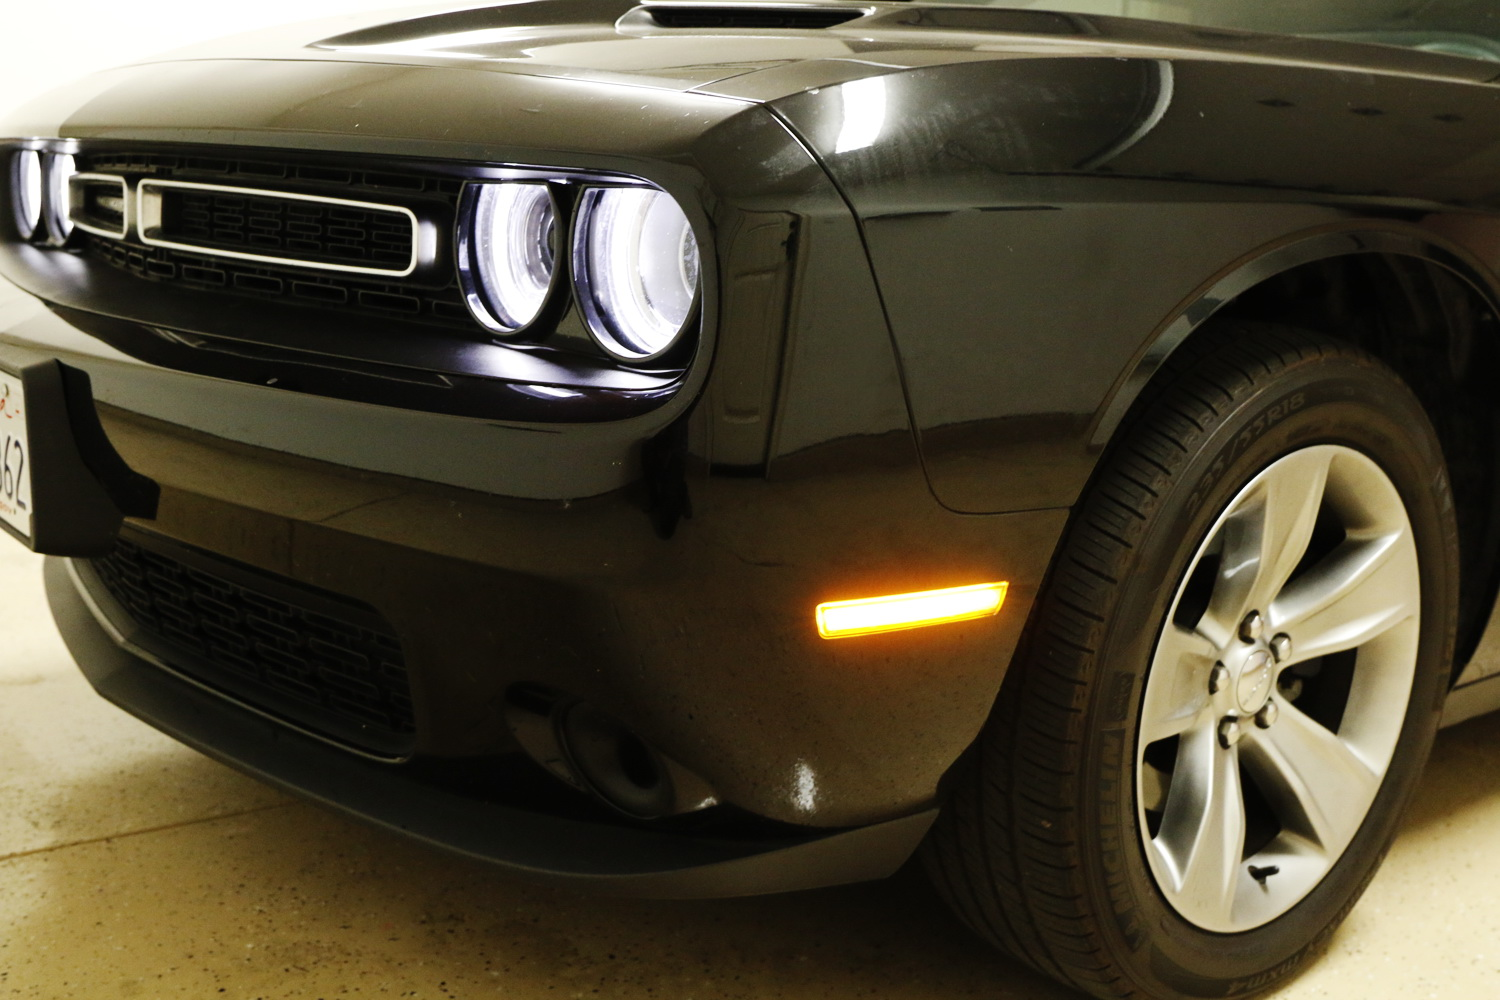 iJDMTOY Clear Lens Amber LED Front Side Marker Lamps Compatible with 08-14 Dodge Challenger Clear LH RH Sidemarkers Powered by 24 Amber SMD LED Lights